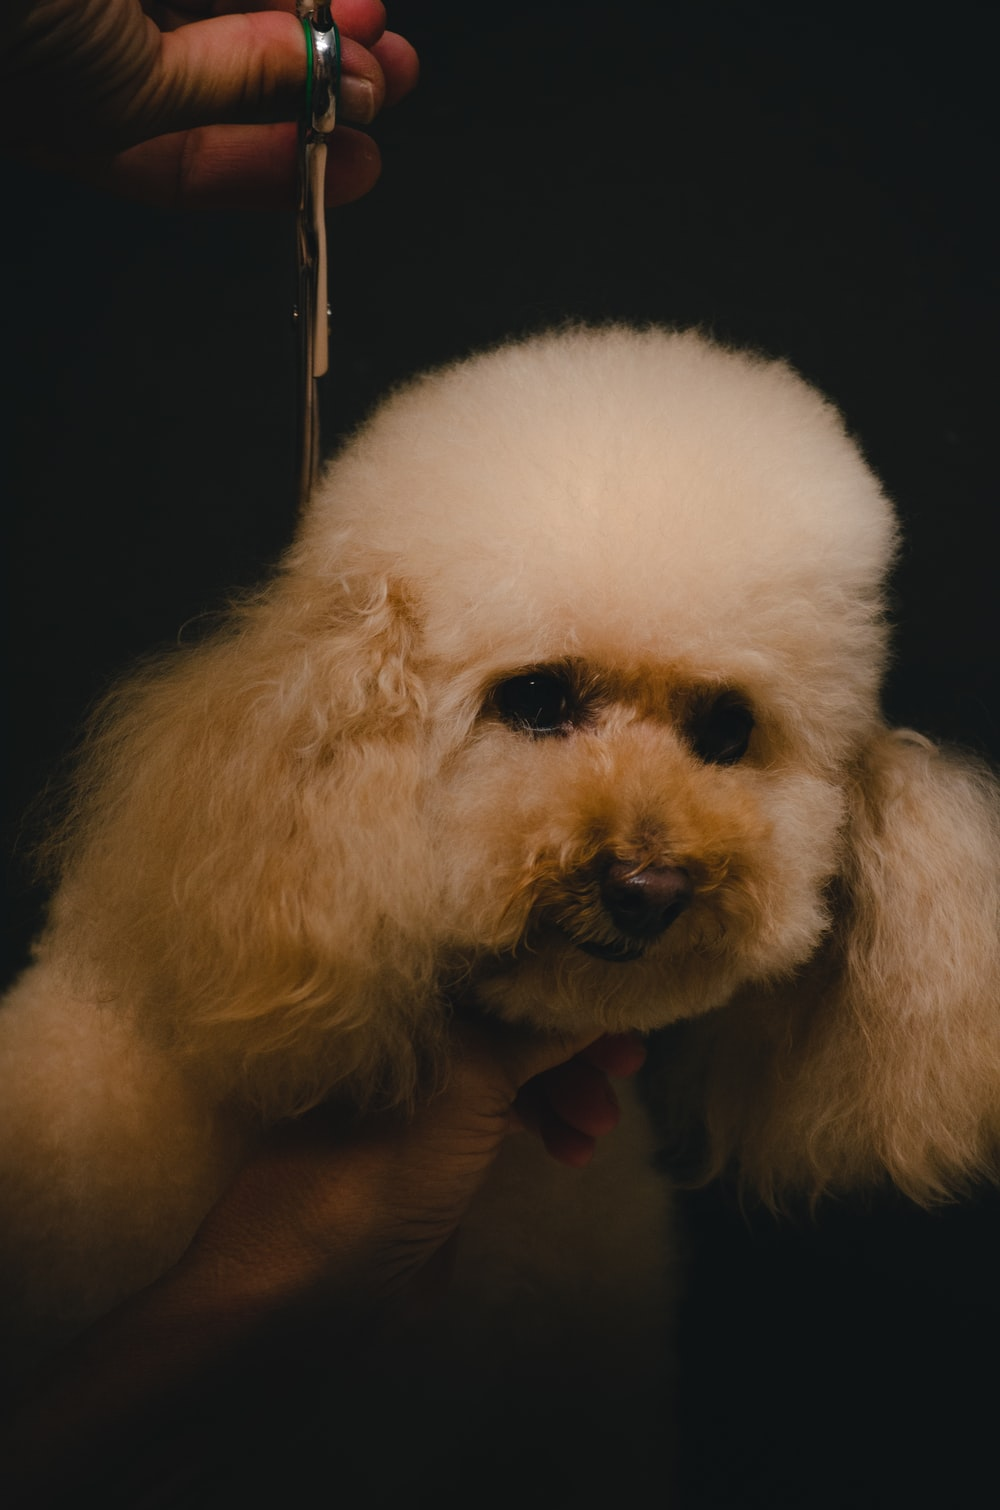 white poodle on persons hand